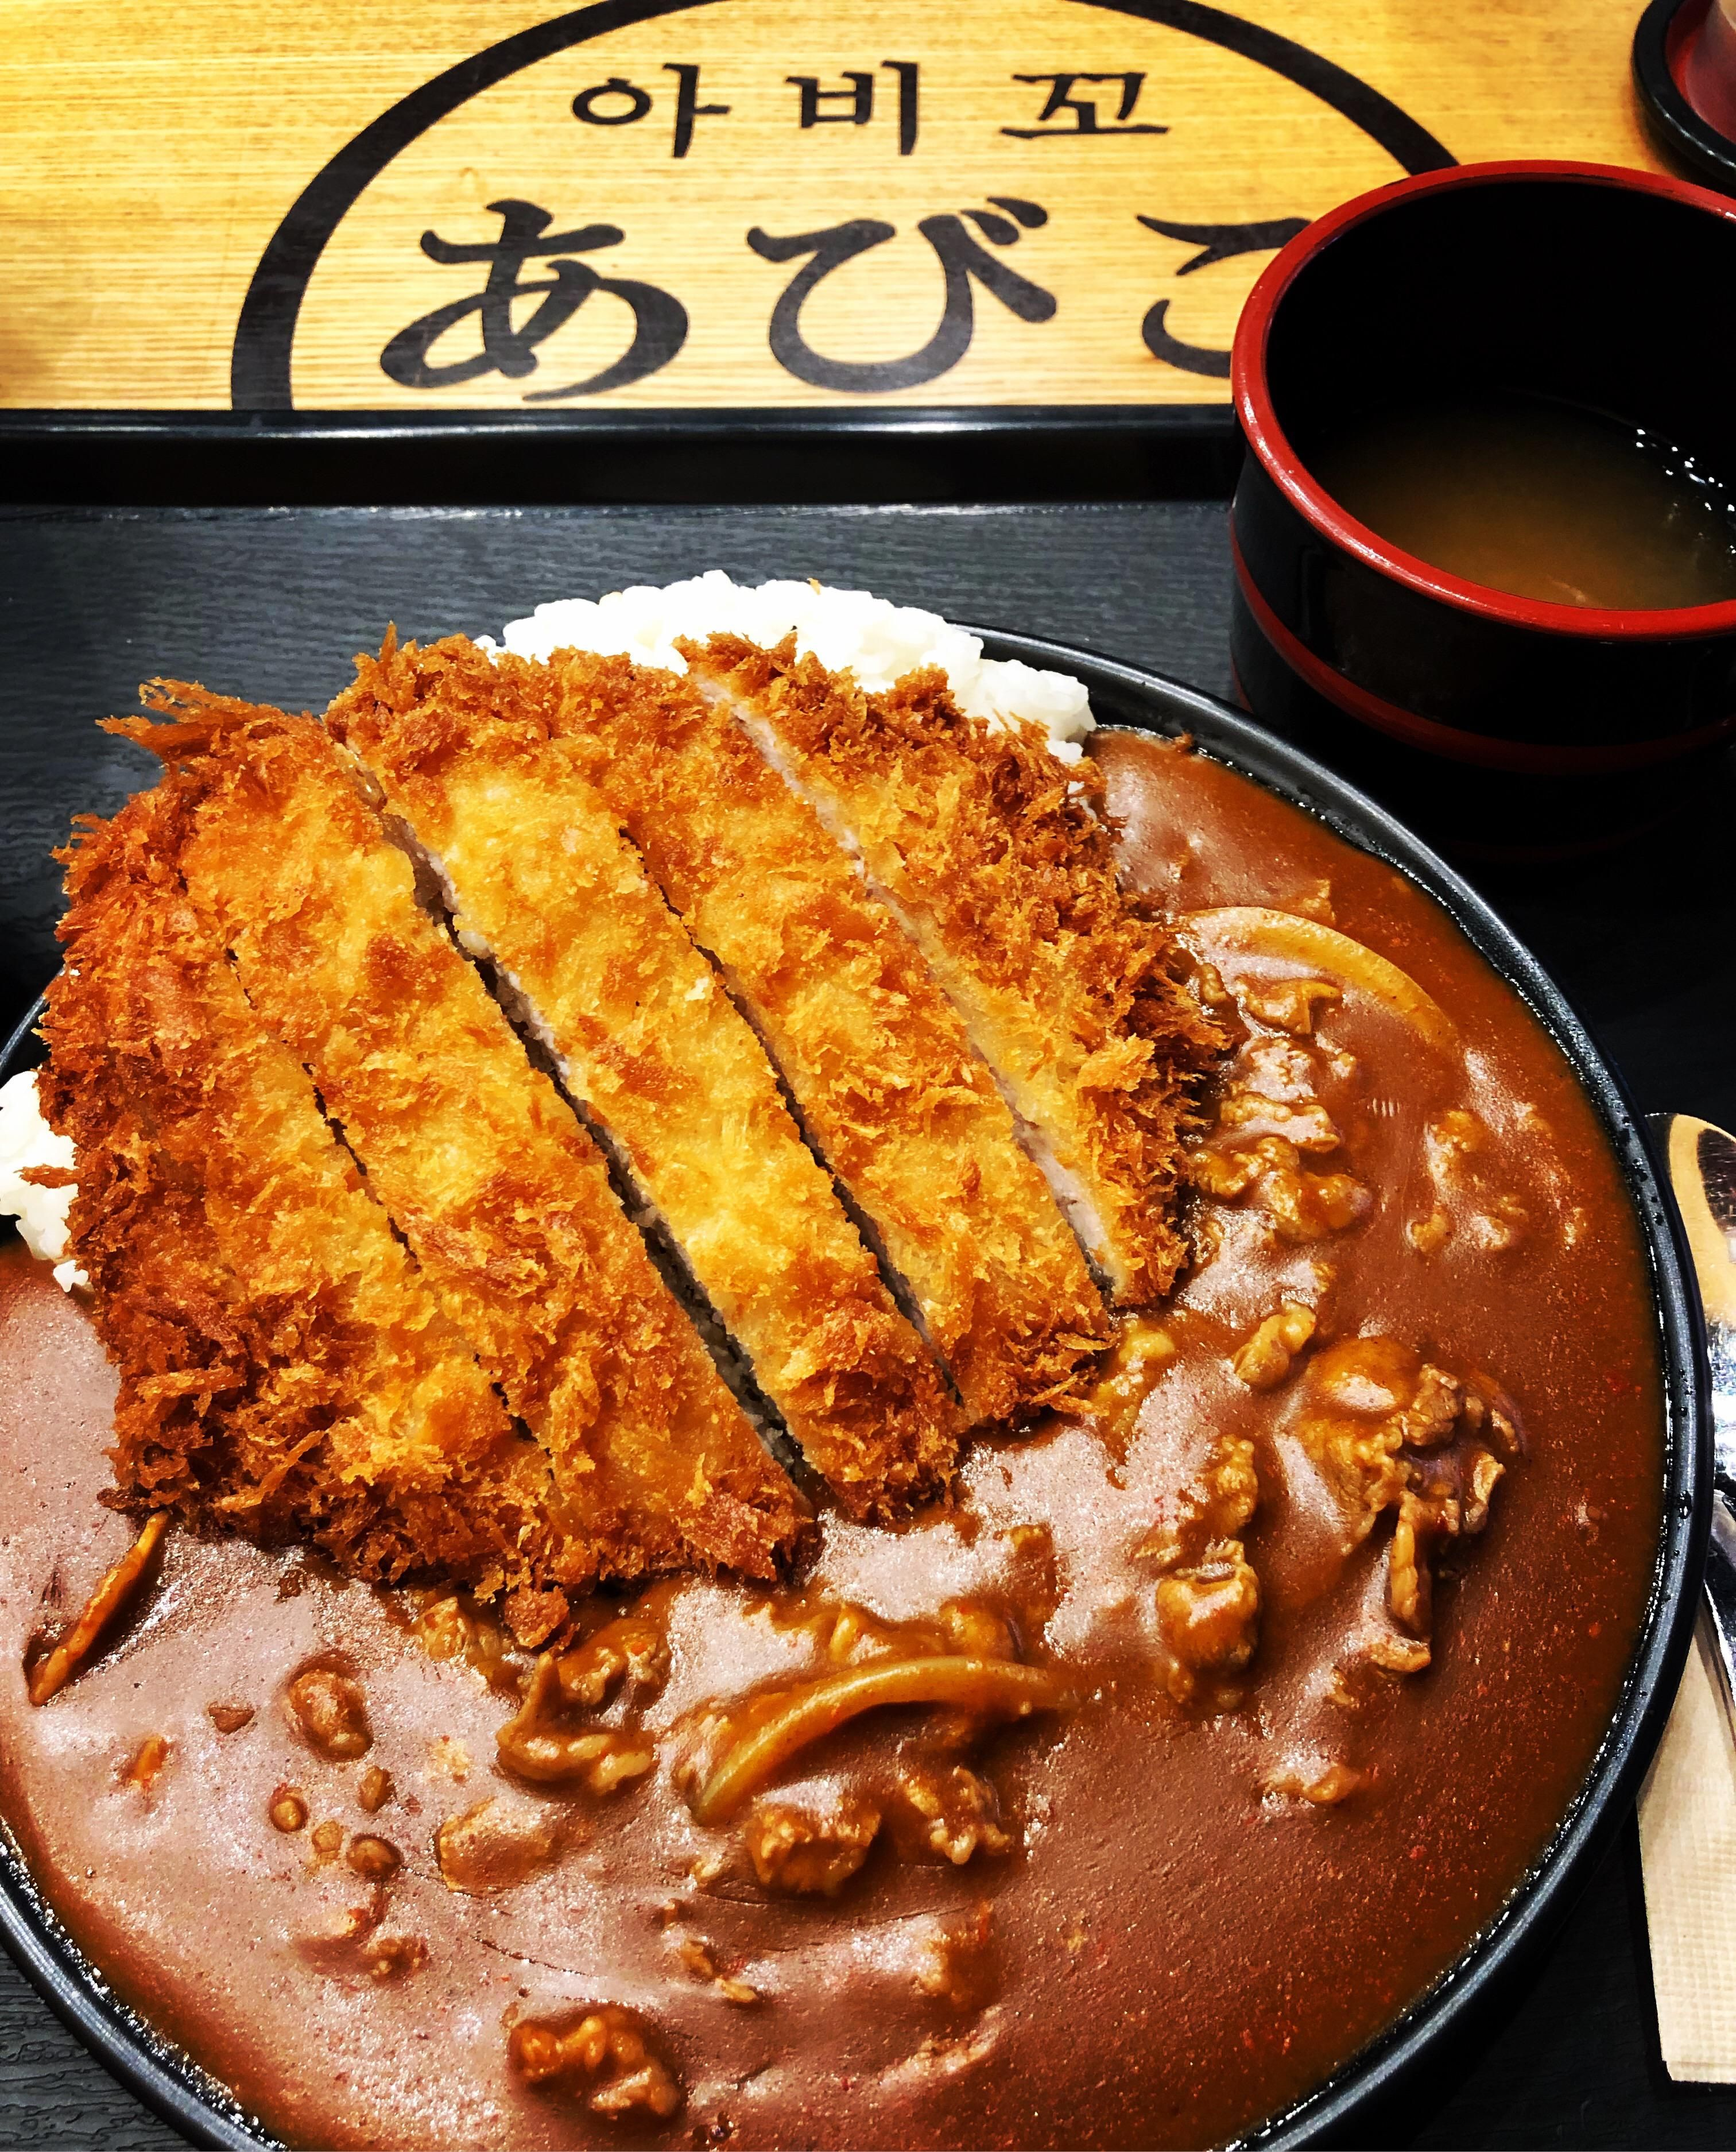 Some Comforting Japanese Curry In Seoul In 2020 Japanese Curry Sweet And Spicy Shrimp Food